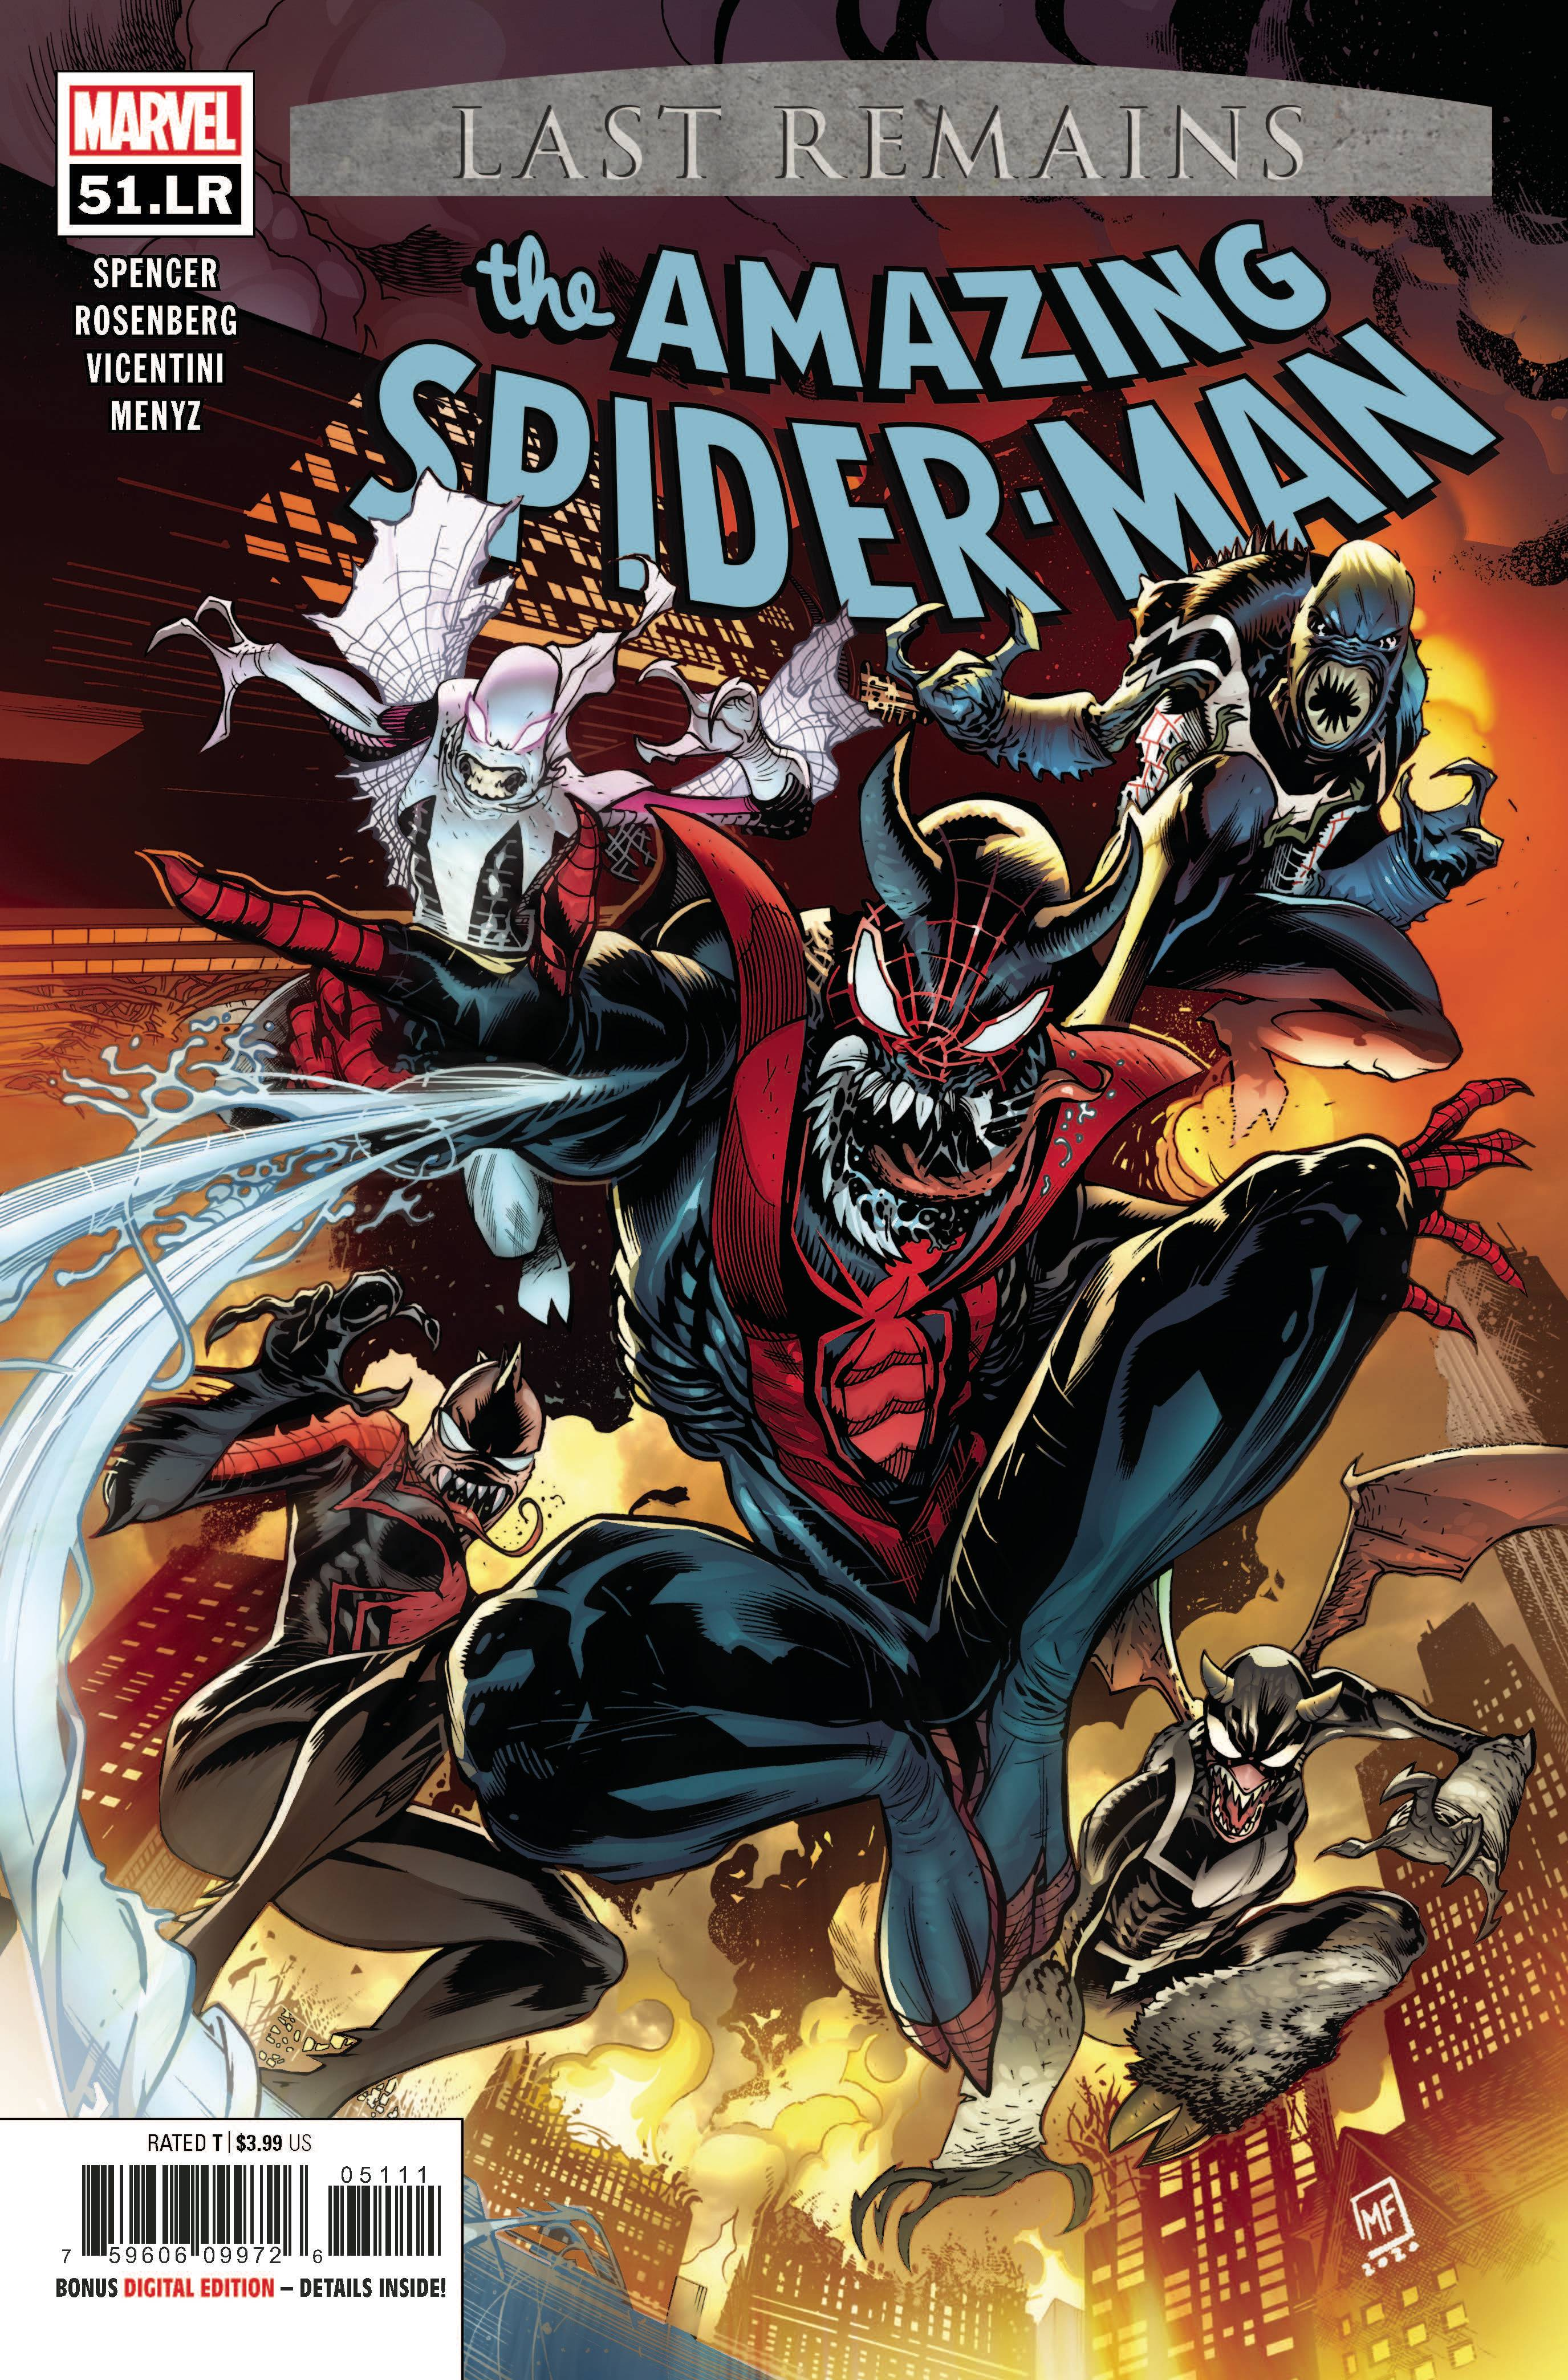 Amazing Spider-Man (Vol. 6)  #51.LR